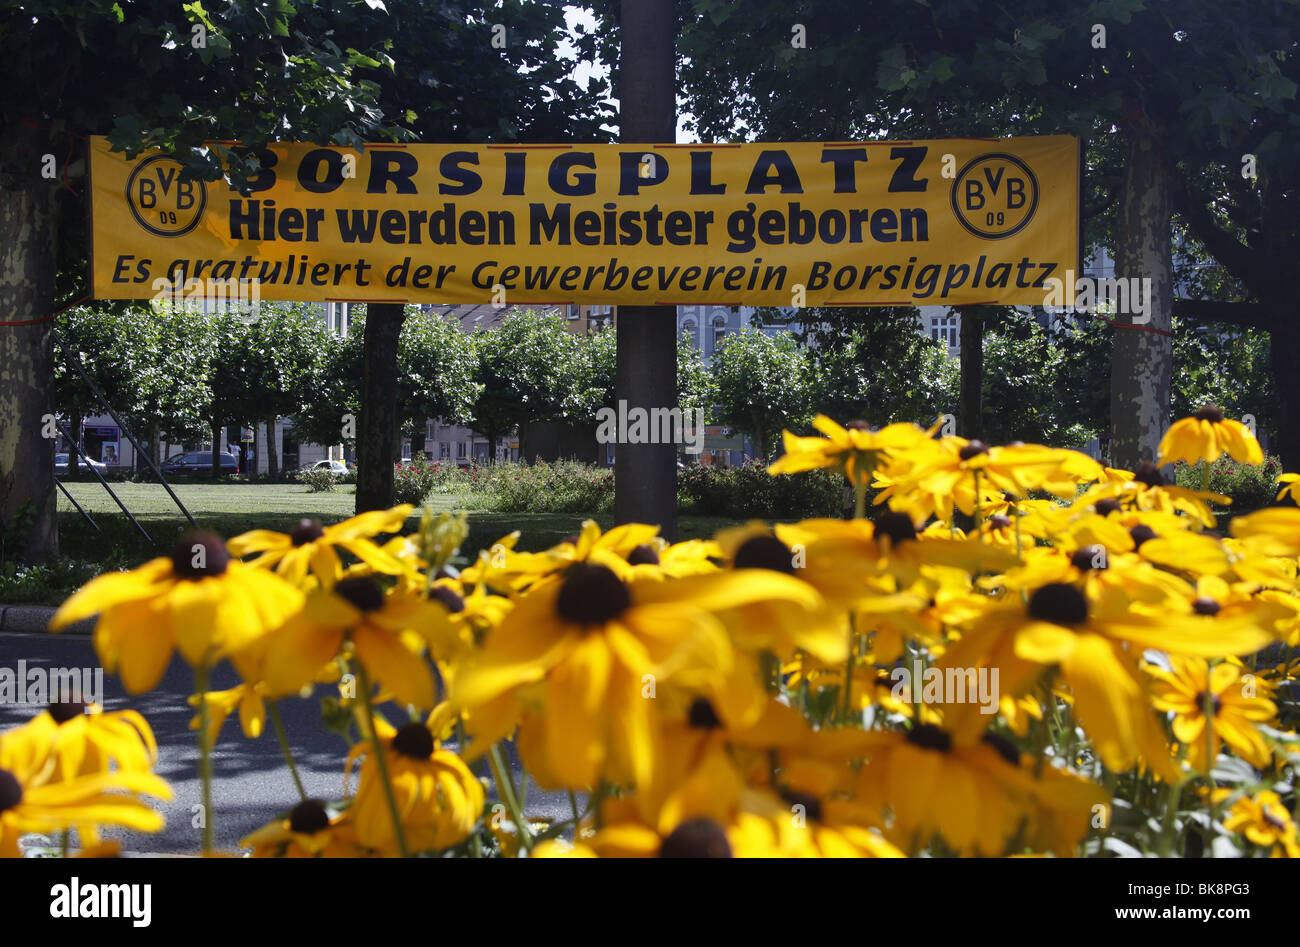 Borsigplatz square with black-yellow flowers and banners to mark the 100th anniversary of the football club Borussia - Stock Image